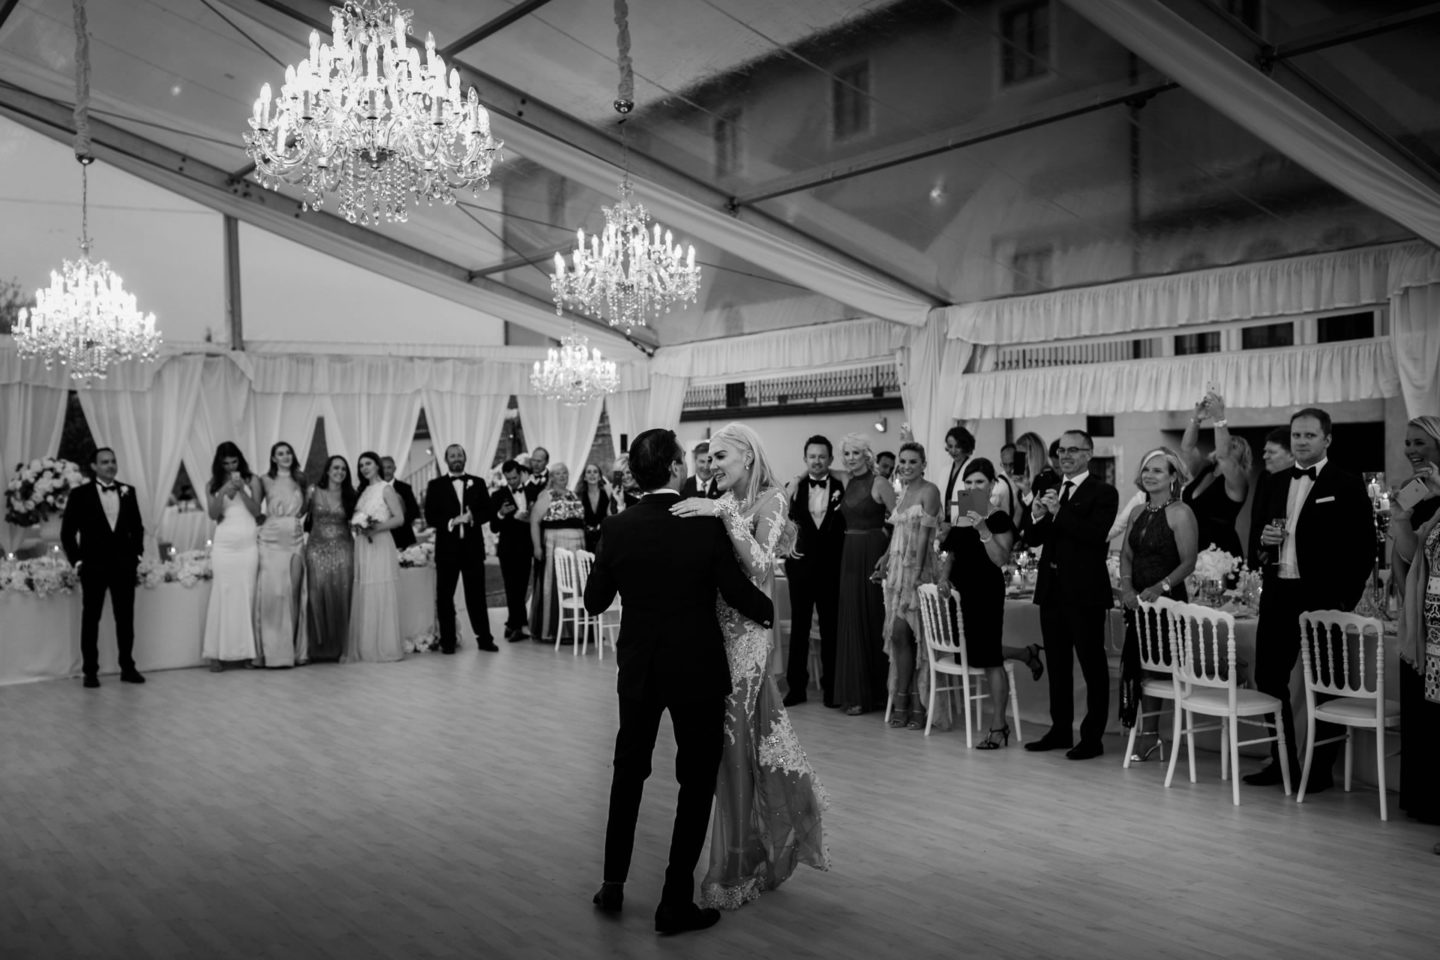 Chandeliers - 61 :: Exciting wedding in the countryside of Siena :: Luxury wedding photography - 60 :: Chandeliers - 61